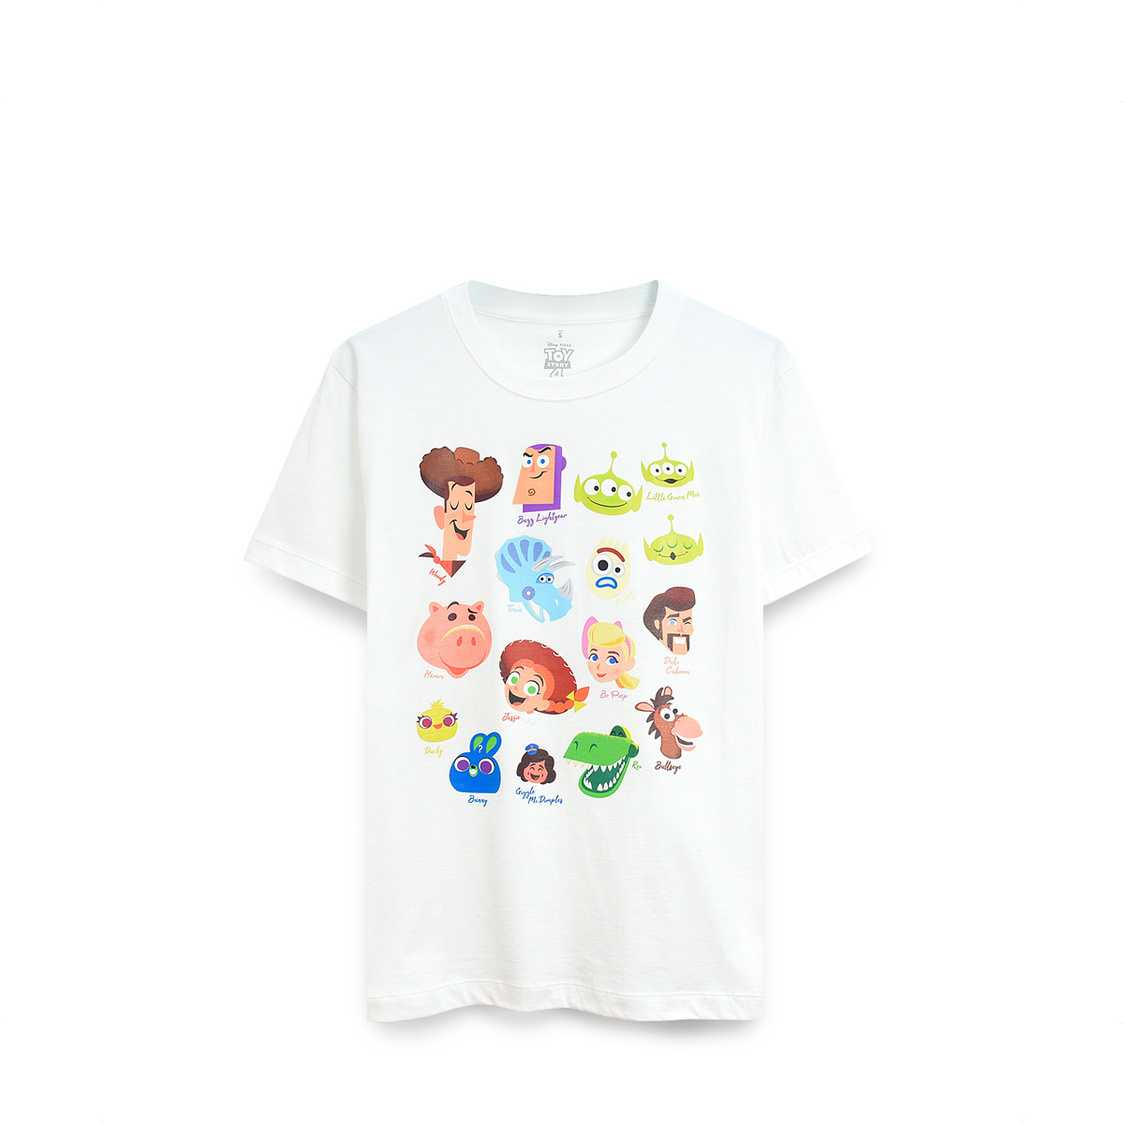 Toy Story Characters Heads T-Shirt White DNY1063